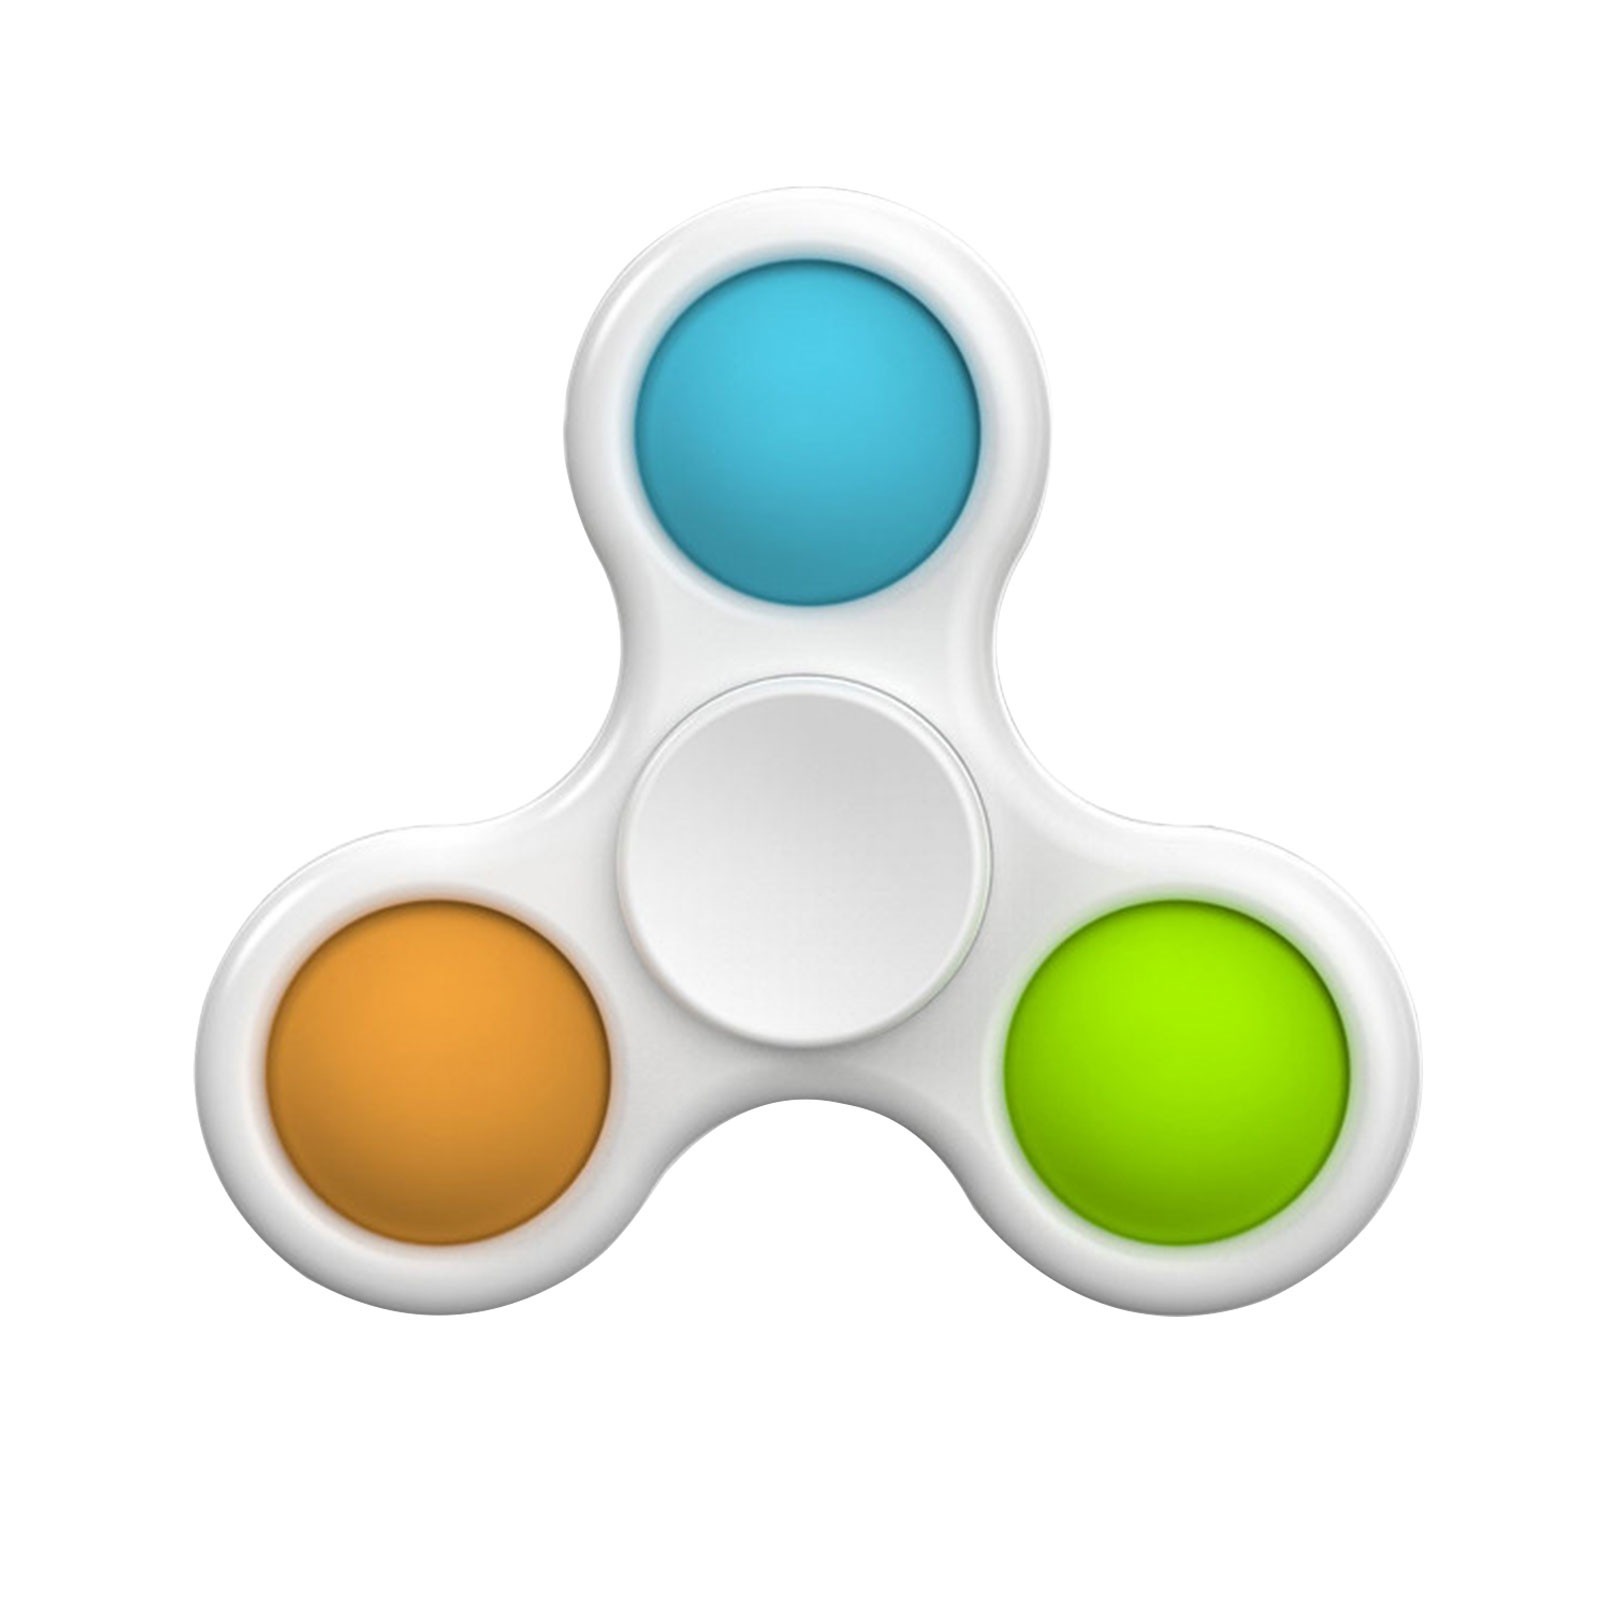 Fidget-Toy Popit Mini Dimple Adult Children Toy-Pressure Reliever Creative Board Controller img5